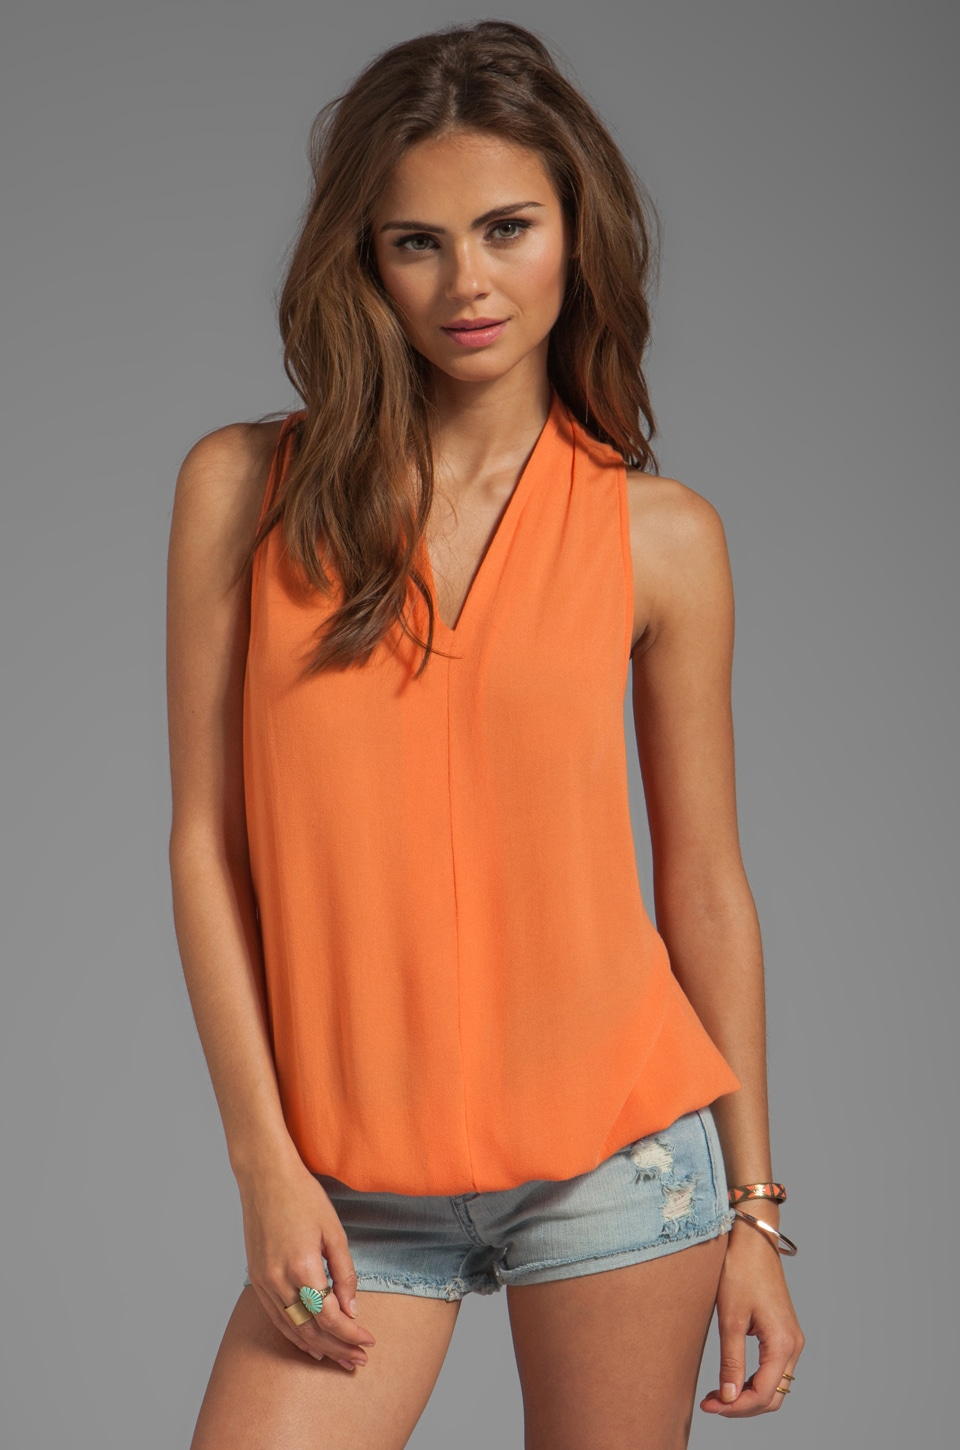 Ella Moss Stella V Neck Tank in Sunset